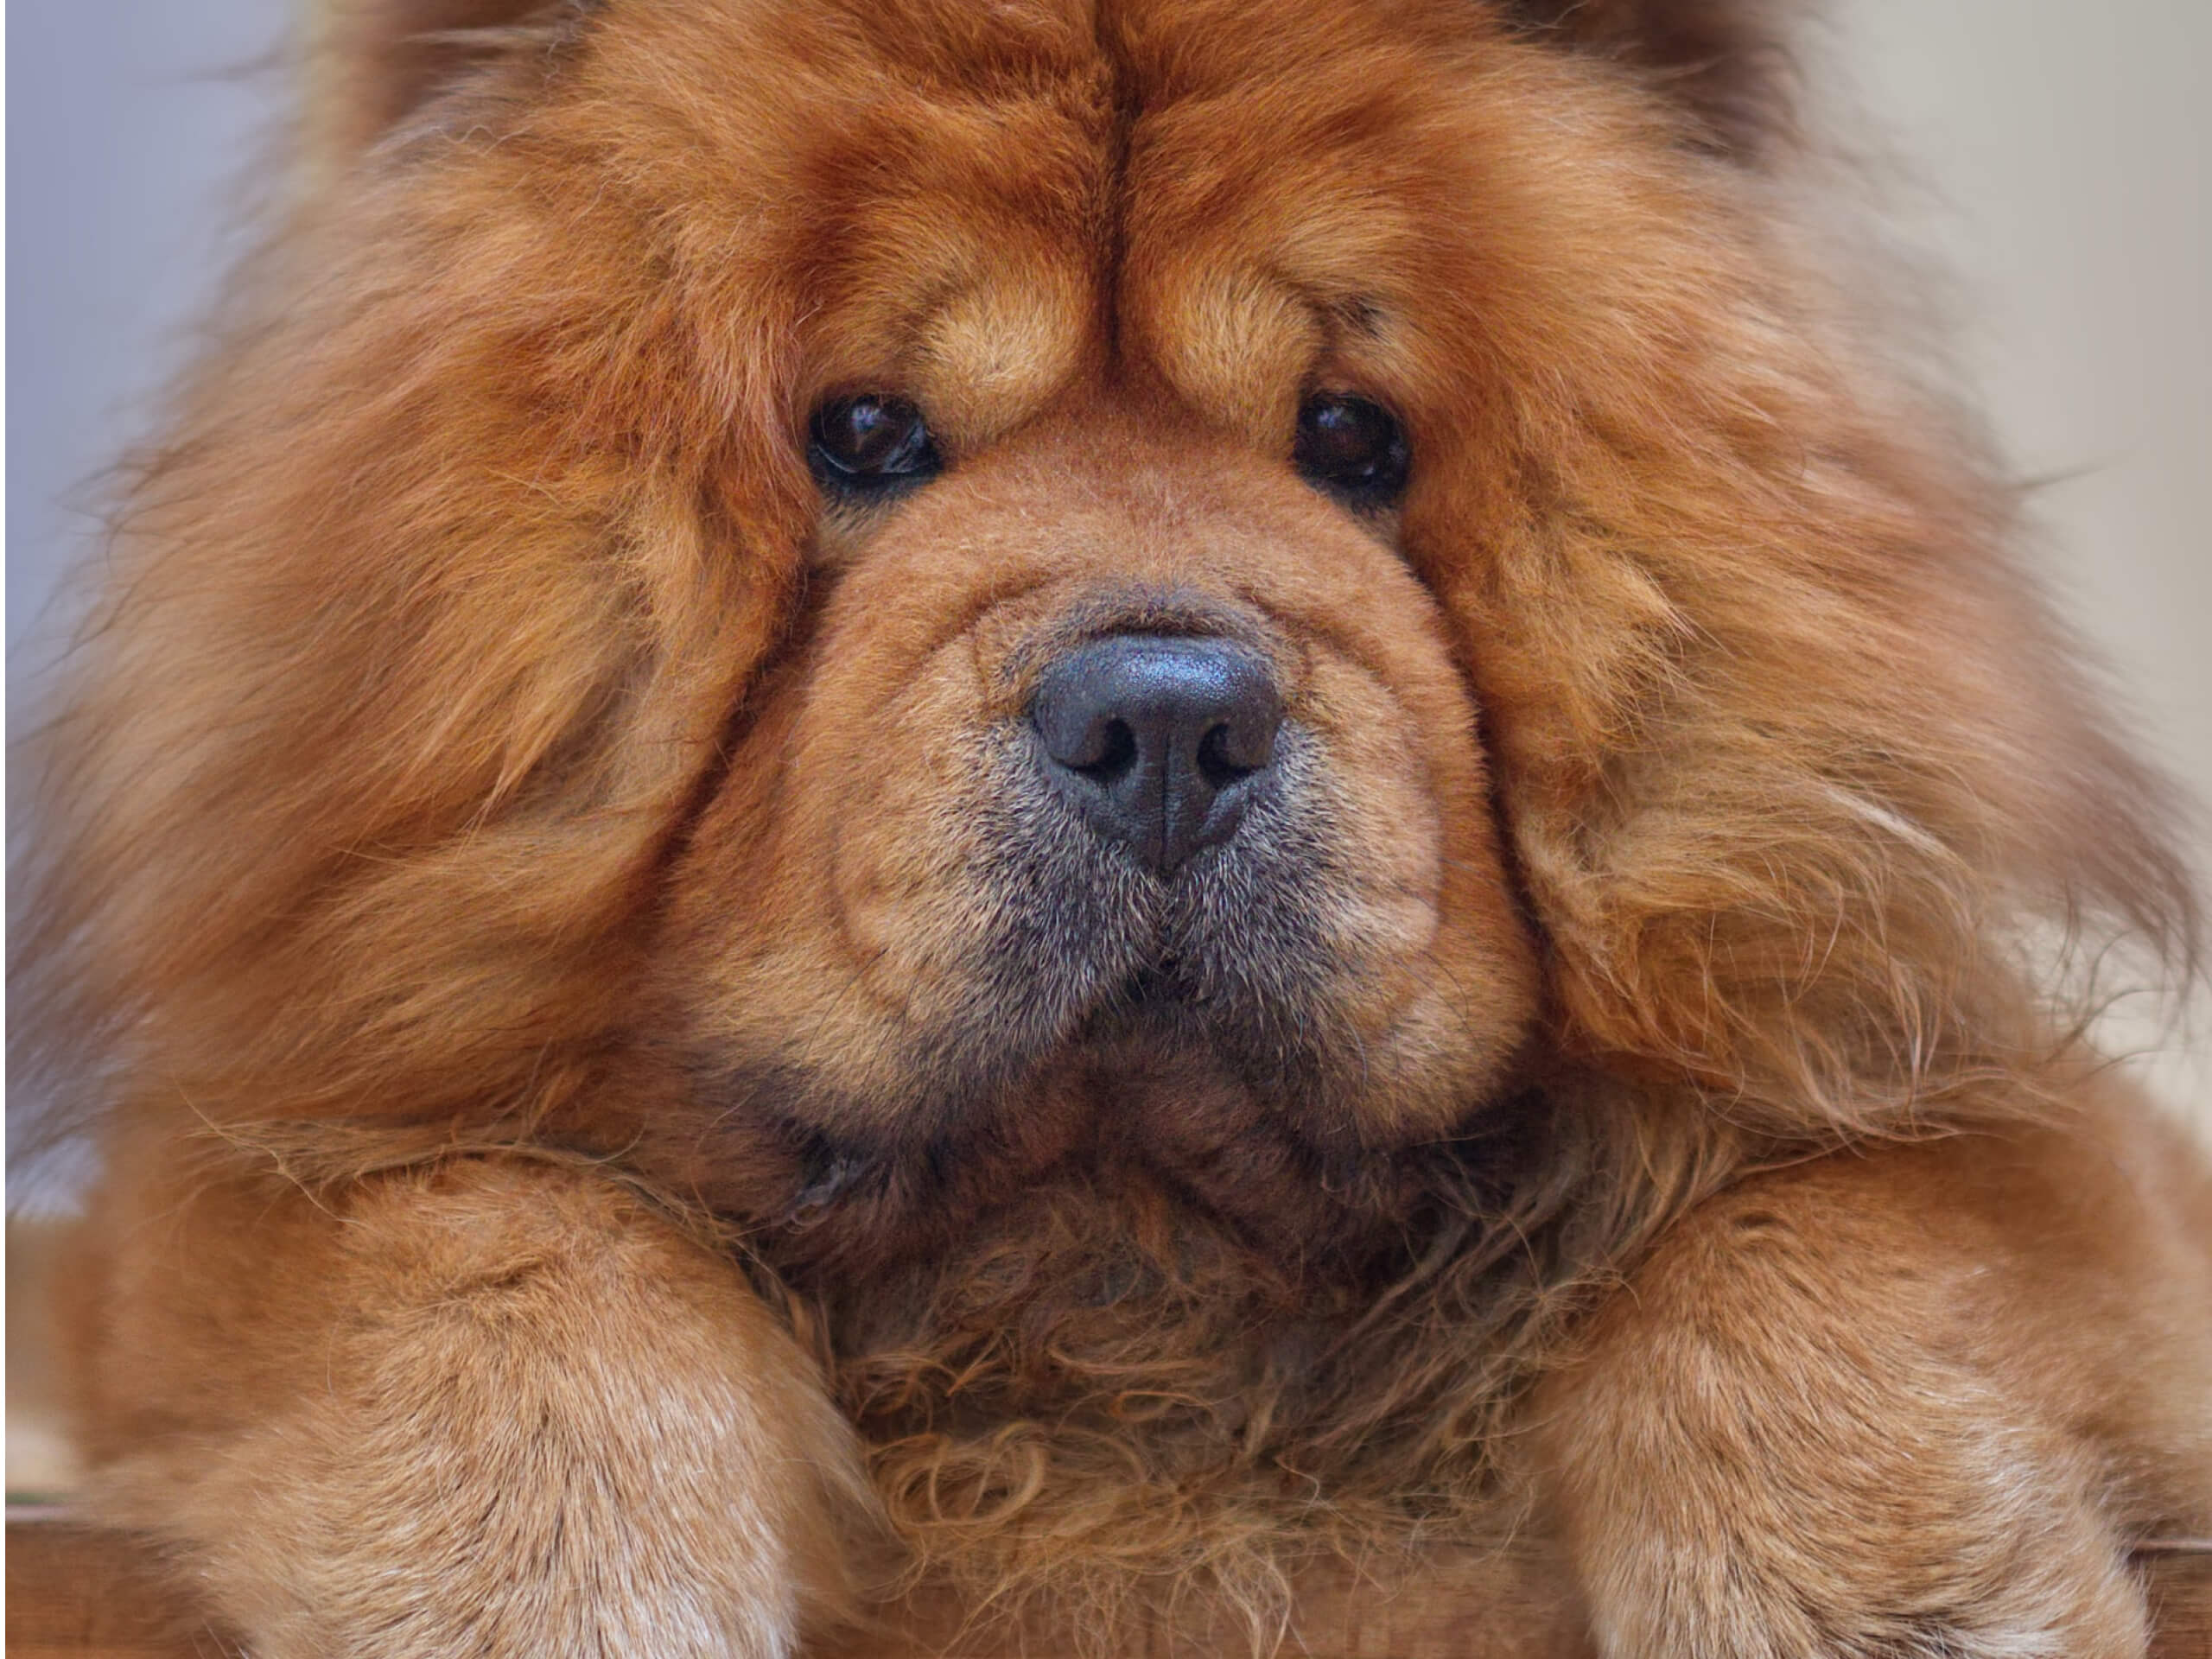 Chow chow looking at the camera with their paws in front.